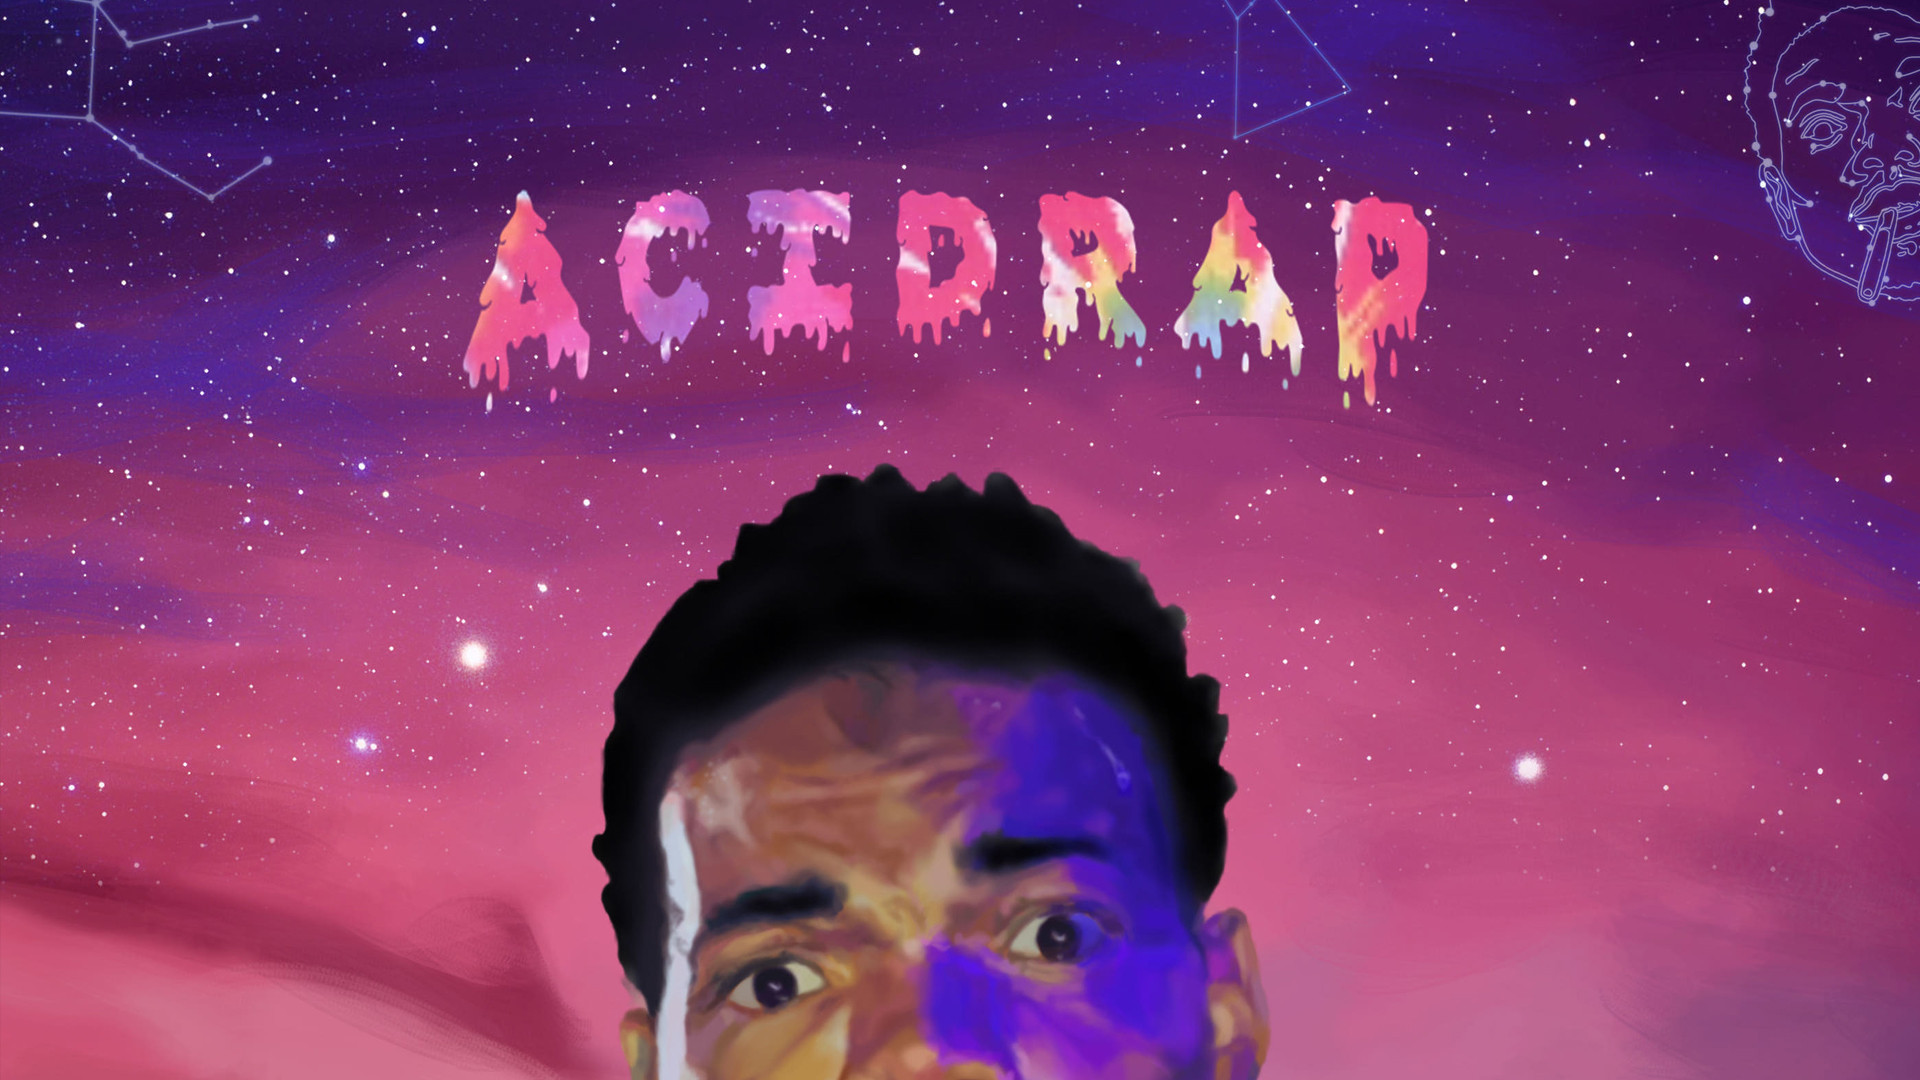 Acid Rap Chance The Rapper Wallpaper Chance the rapper acid rap